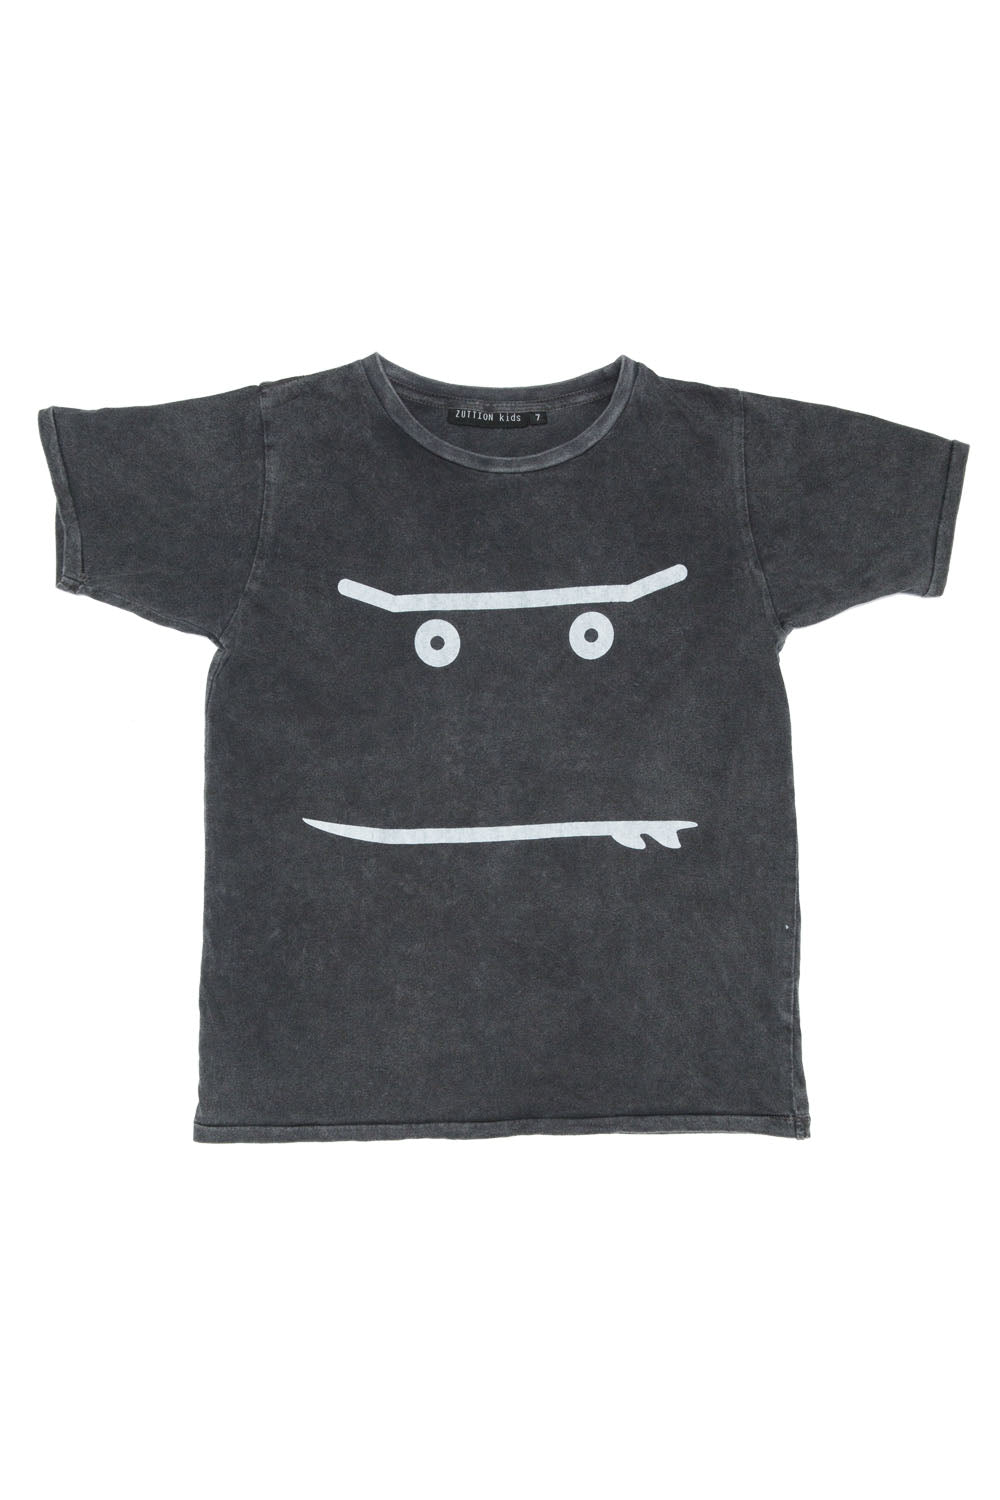 NEW SMILEY ROUND NECK T CHARCOAL